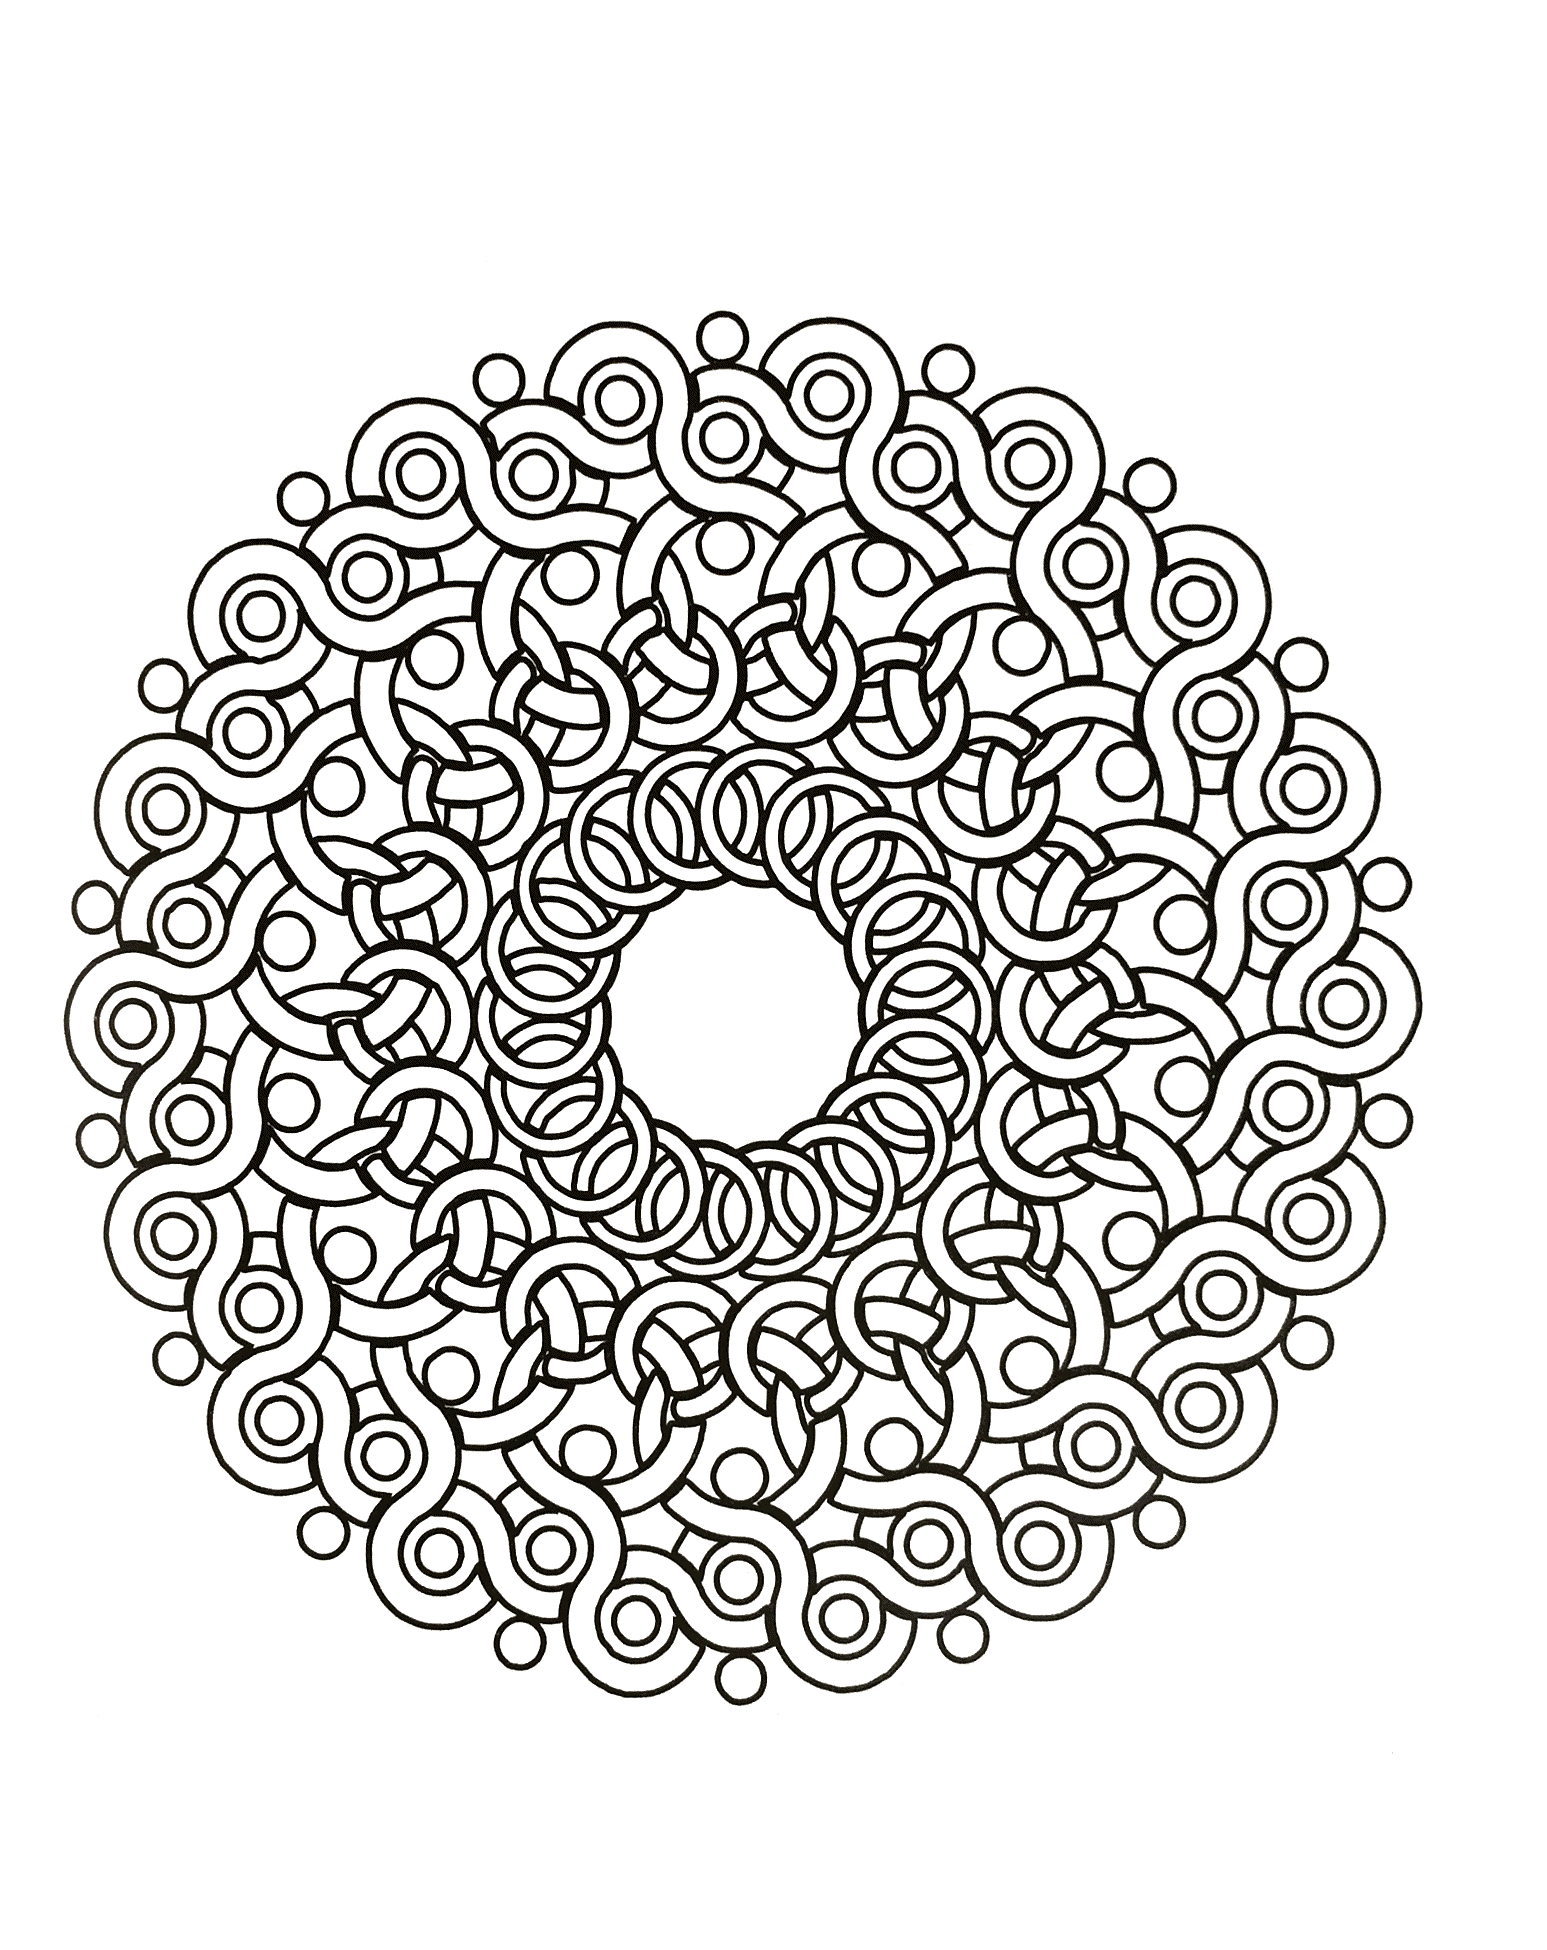 free mandalas page mandala to download free mandala drawing made with rings not too. Black Bedroom Furniture Sets. Home Design Ideas